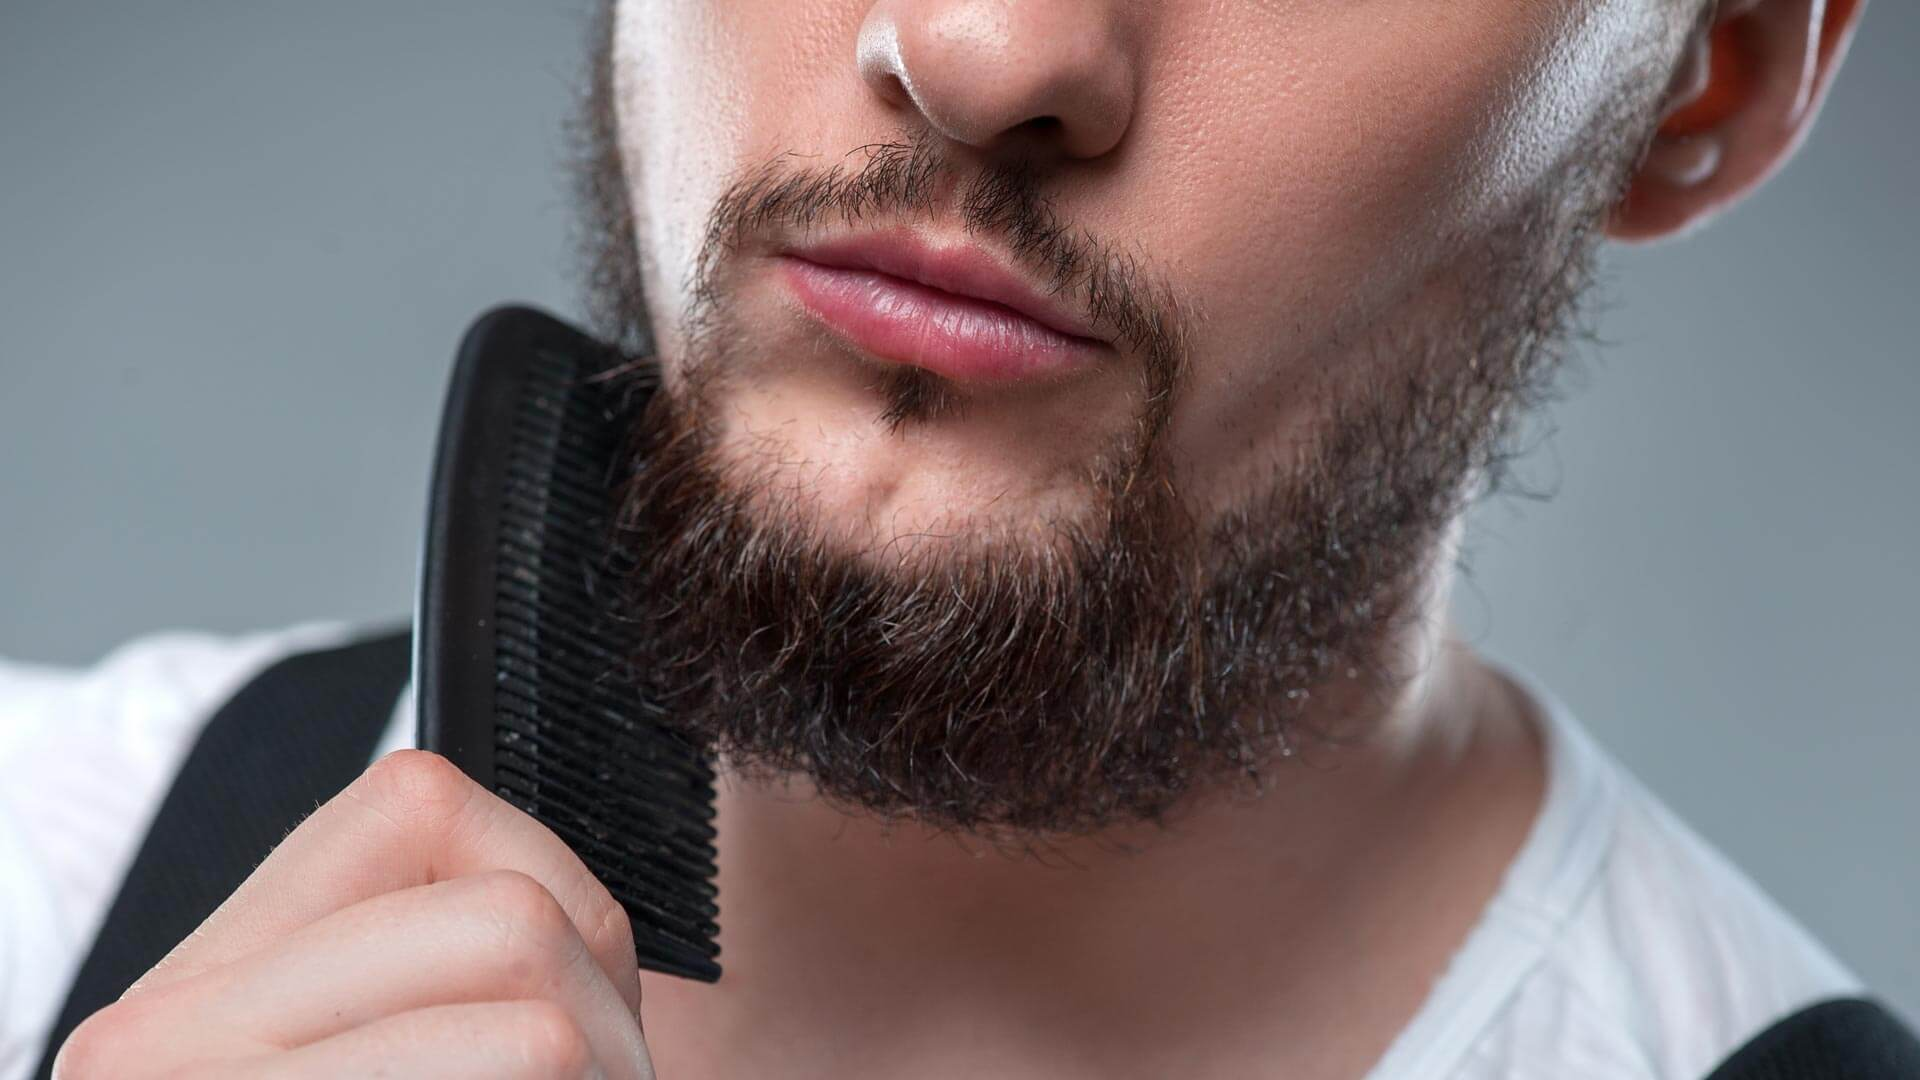 Beard care product accessories and other helpful beard care items can be found here, from beard combs to beard soaps, all the way to beard charity, if it's not a beard oil, balm or wax, you'll find it in here!